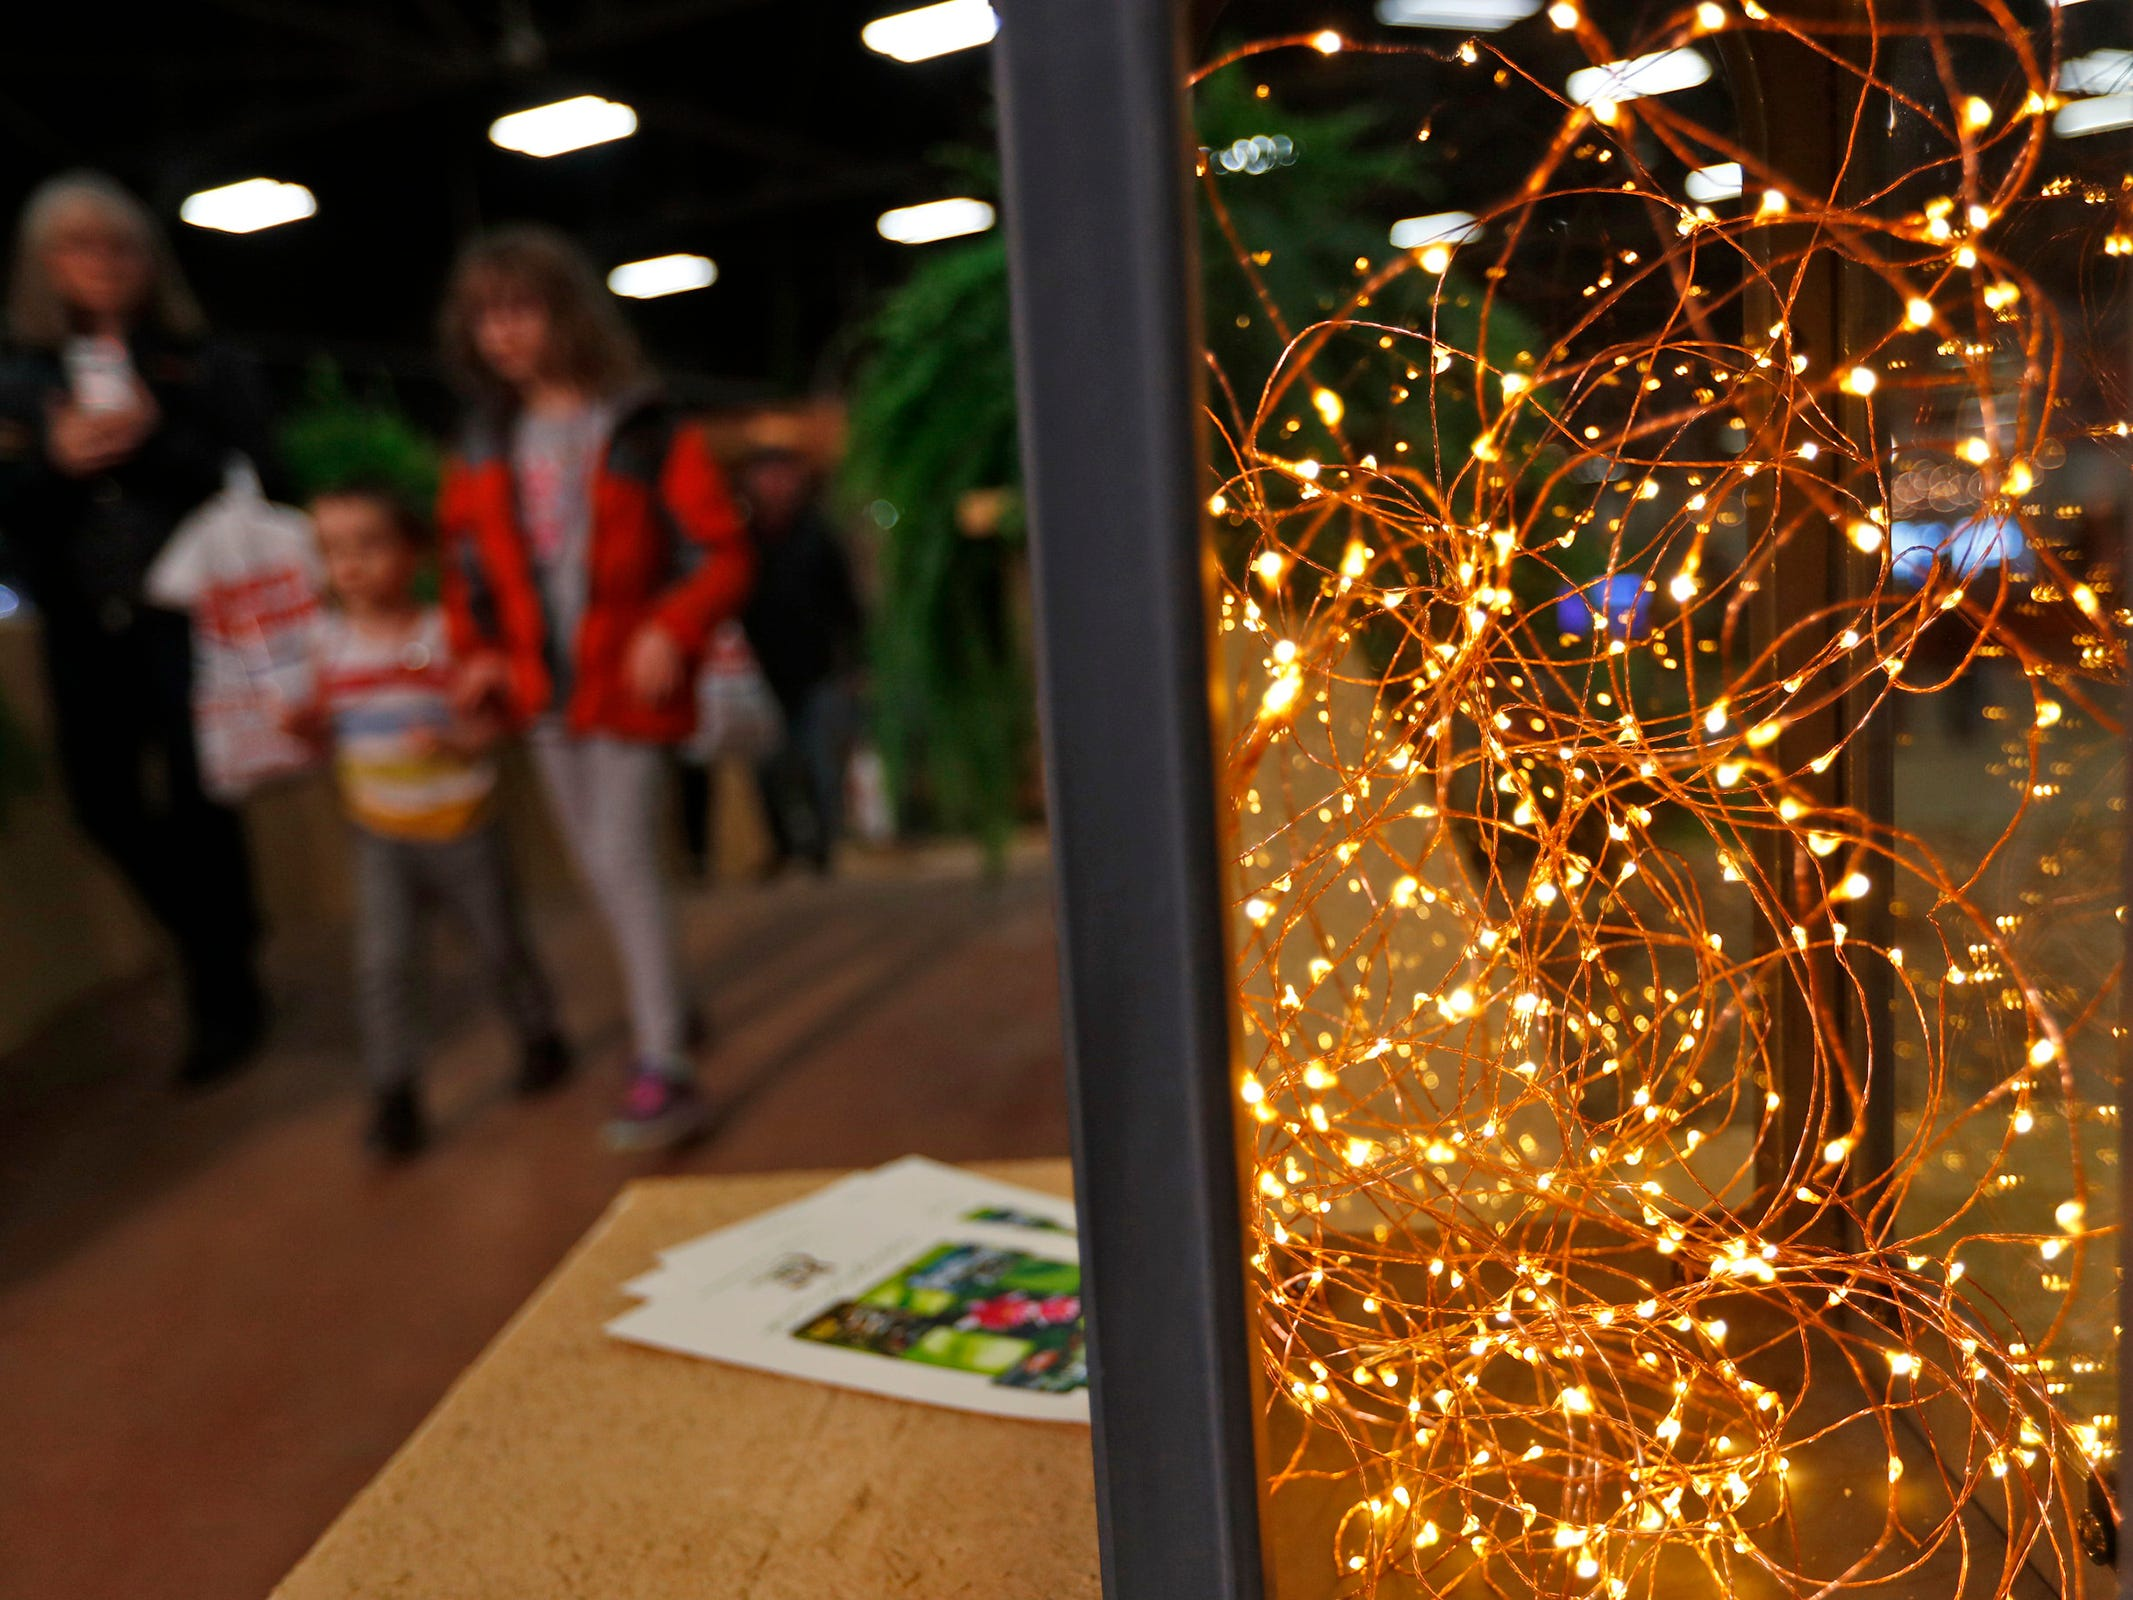 Lights appear to dance in a lantern at the Pro Care Horticultural Services display, at the Indiana Flower + Patio Show, at the Indiana State Fairgrounds, Sunday, March 10, 2019.